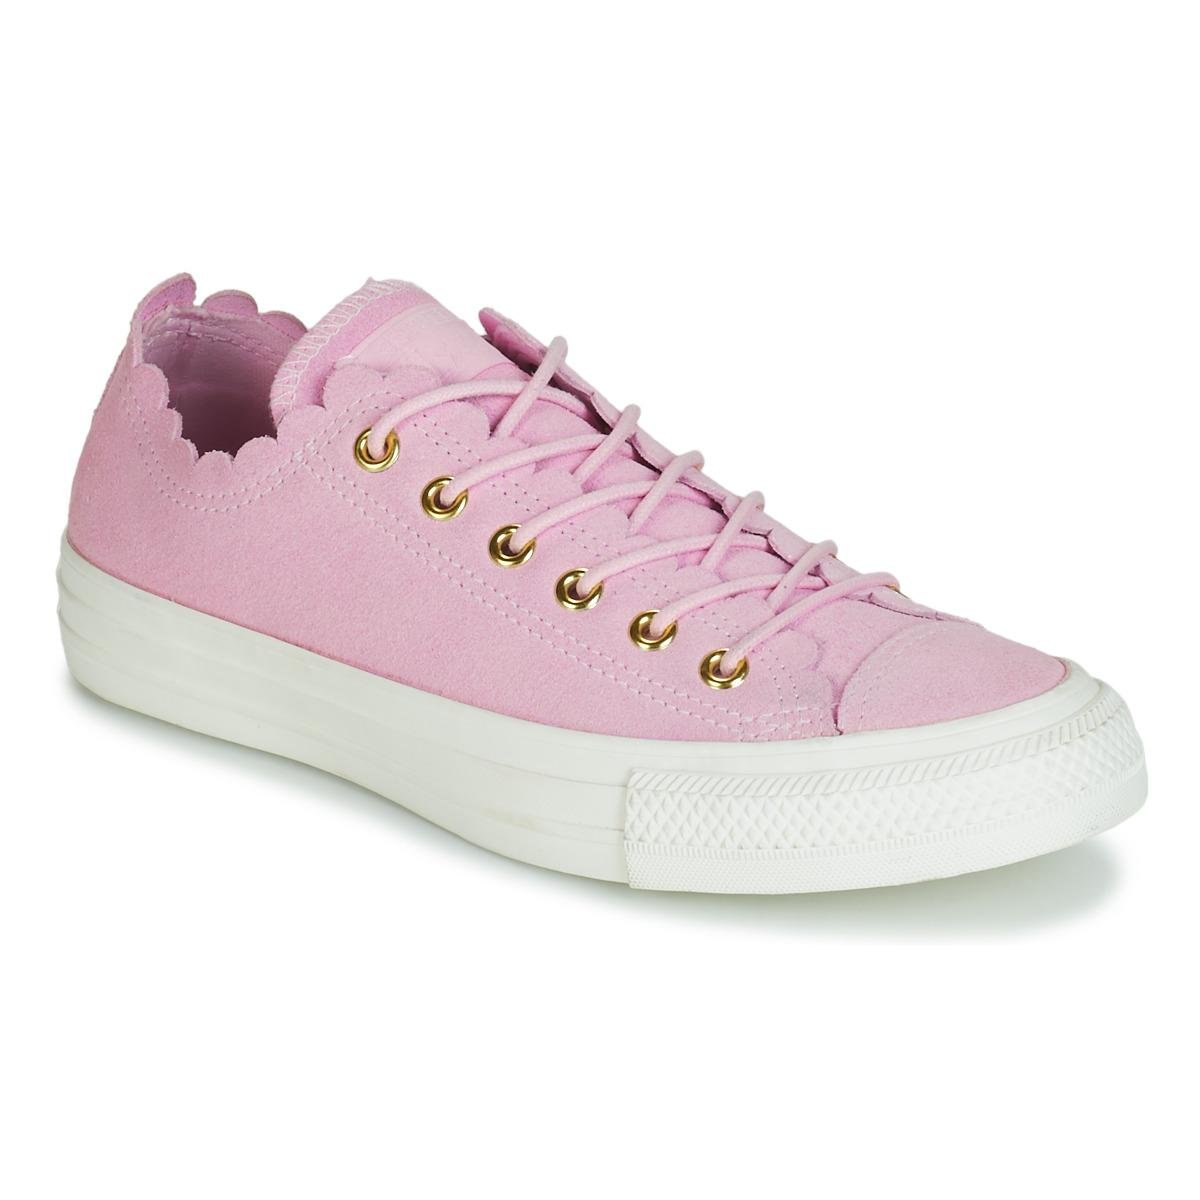 Converse Chuck Taylor All Star Frilly Thrills Suede Ox Shoes ... c02e1a710